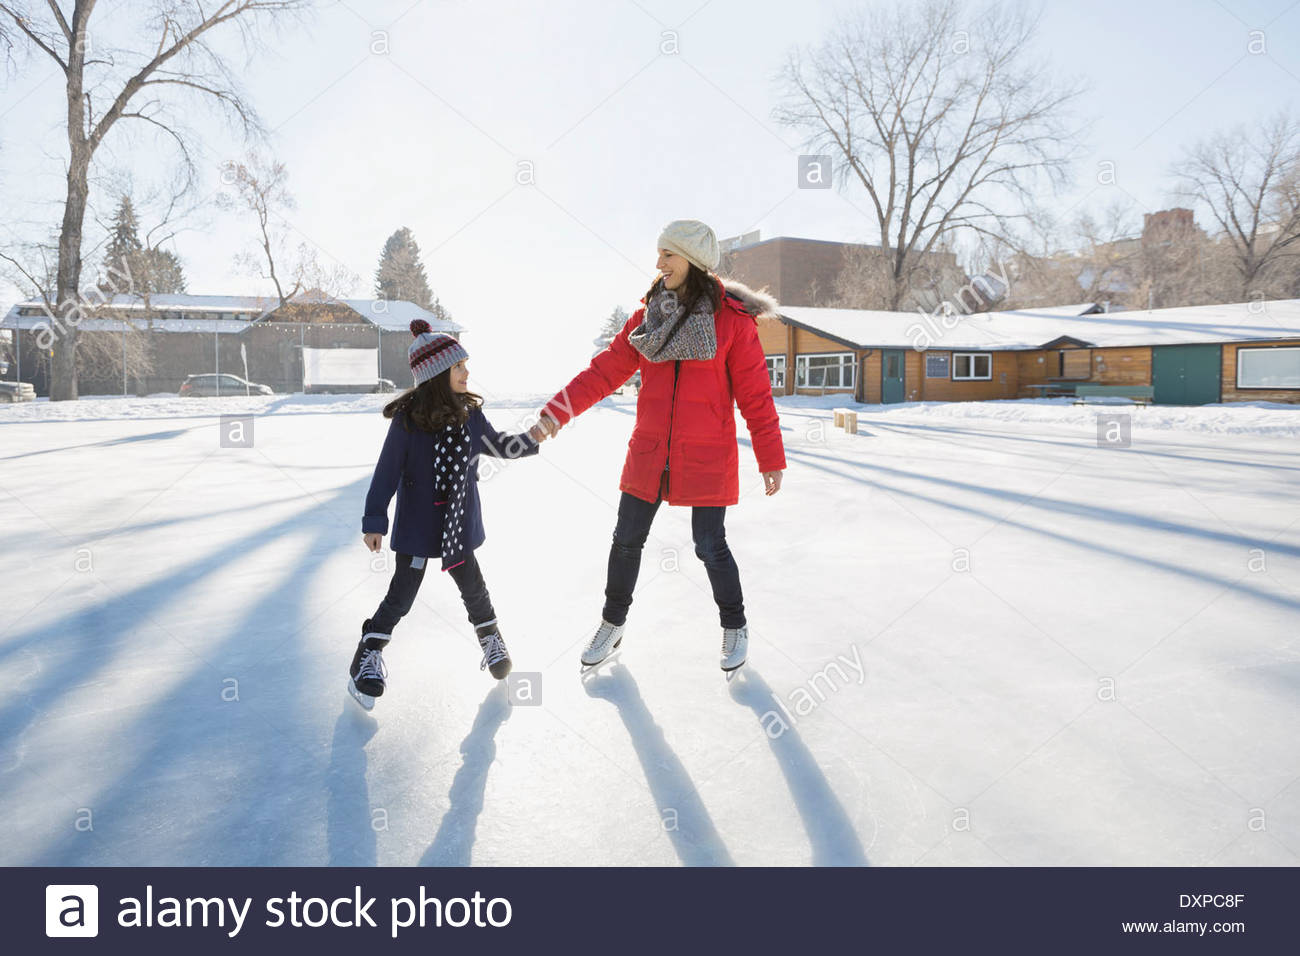 Mother and daughter ice-skating on rink - Stock Image